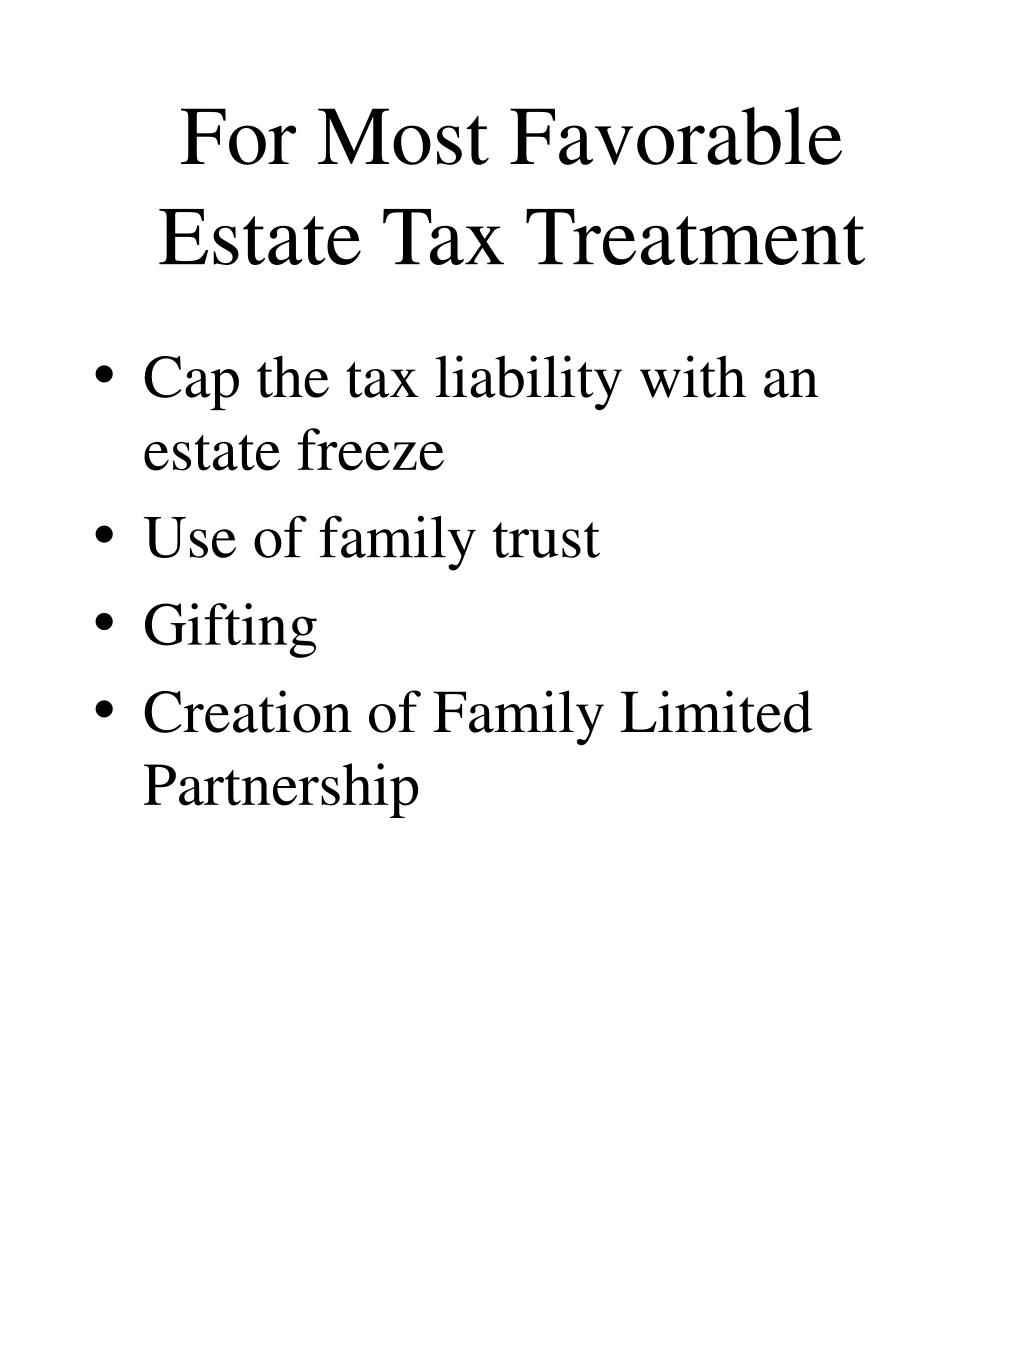 For Most Favorable Estate Tax Treatment